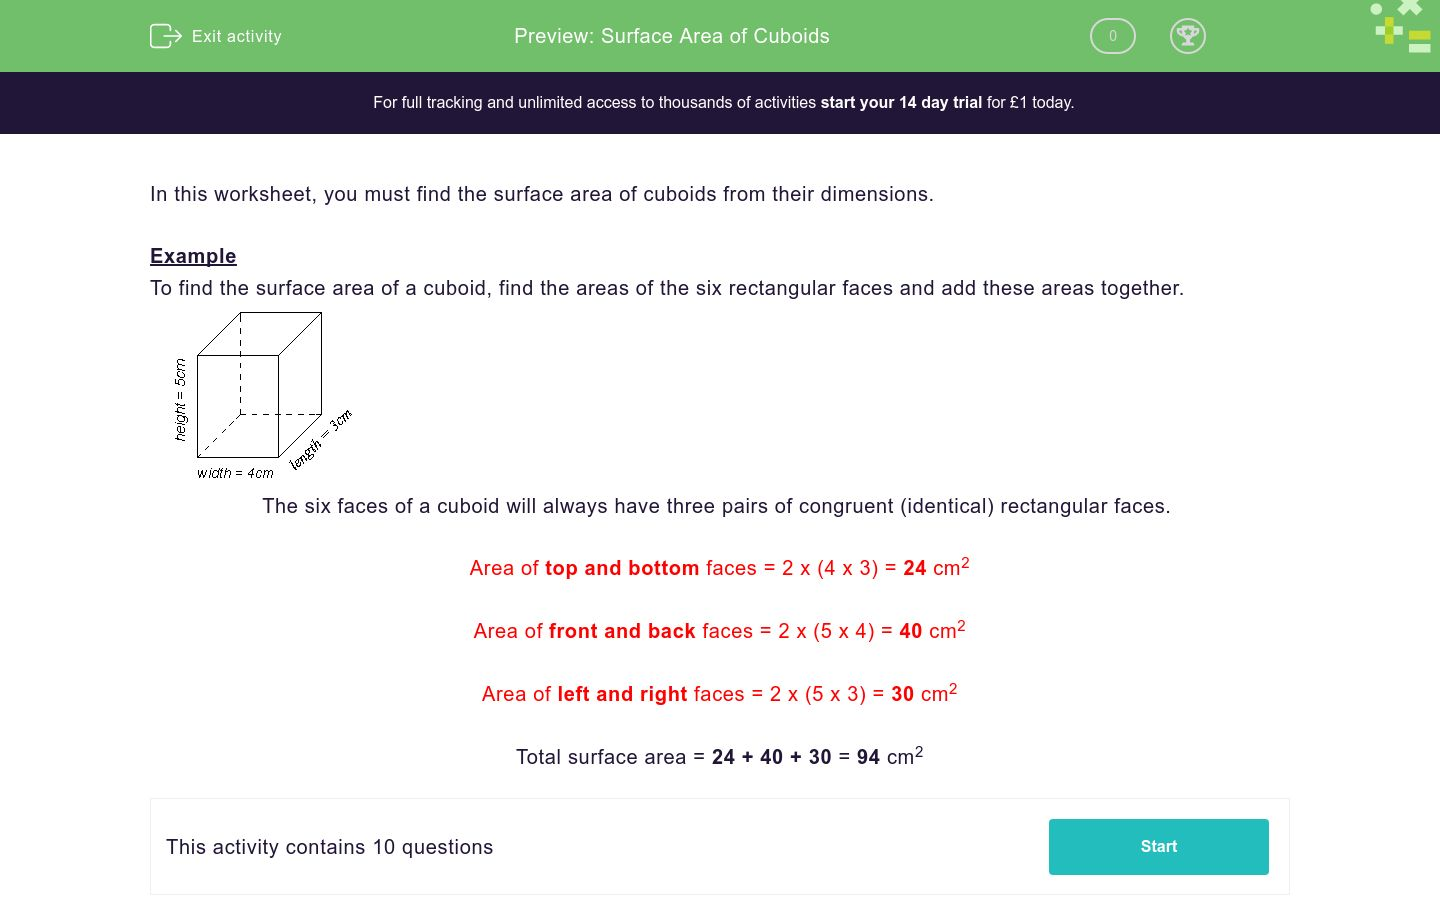 'Surface Area of Cuboids' worksheet